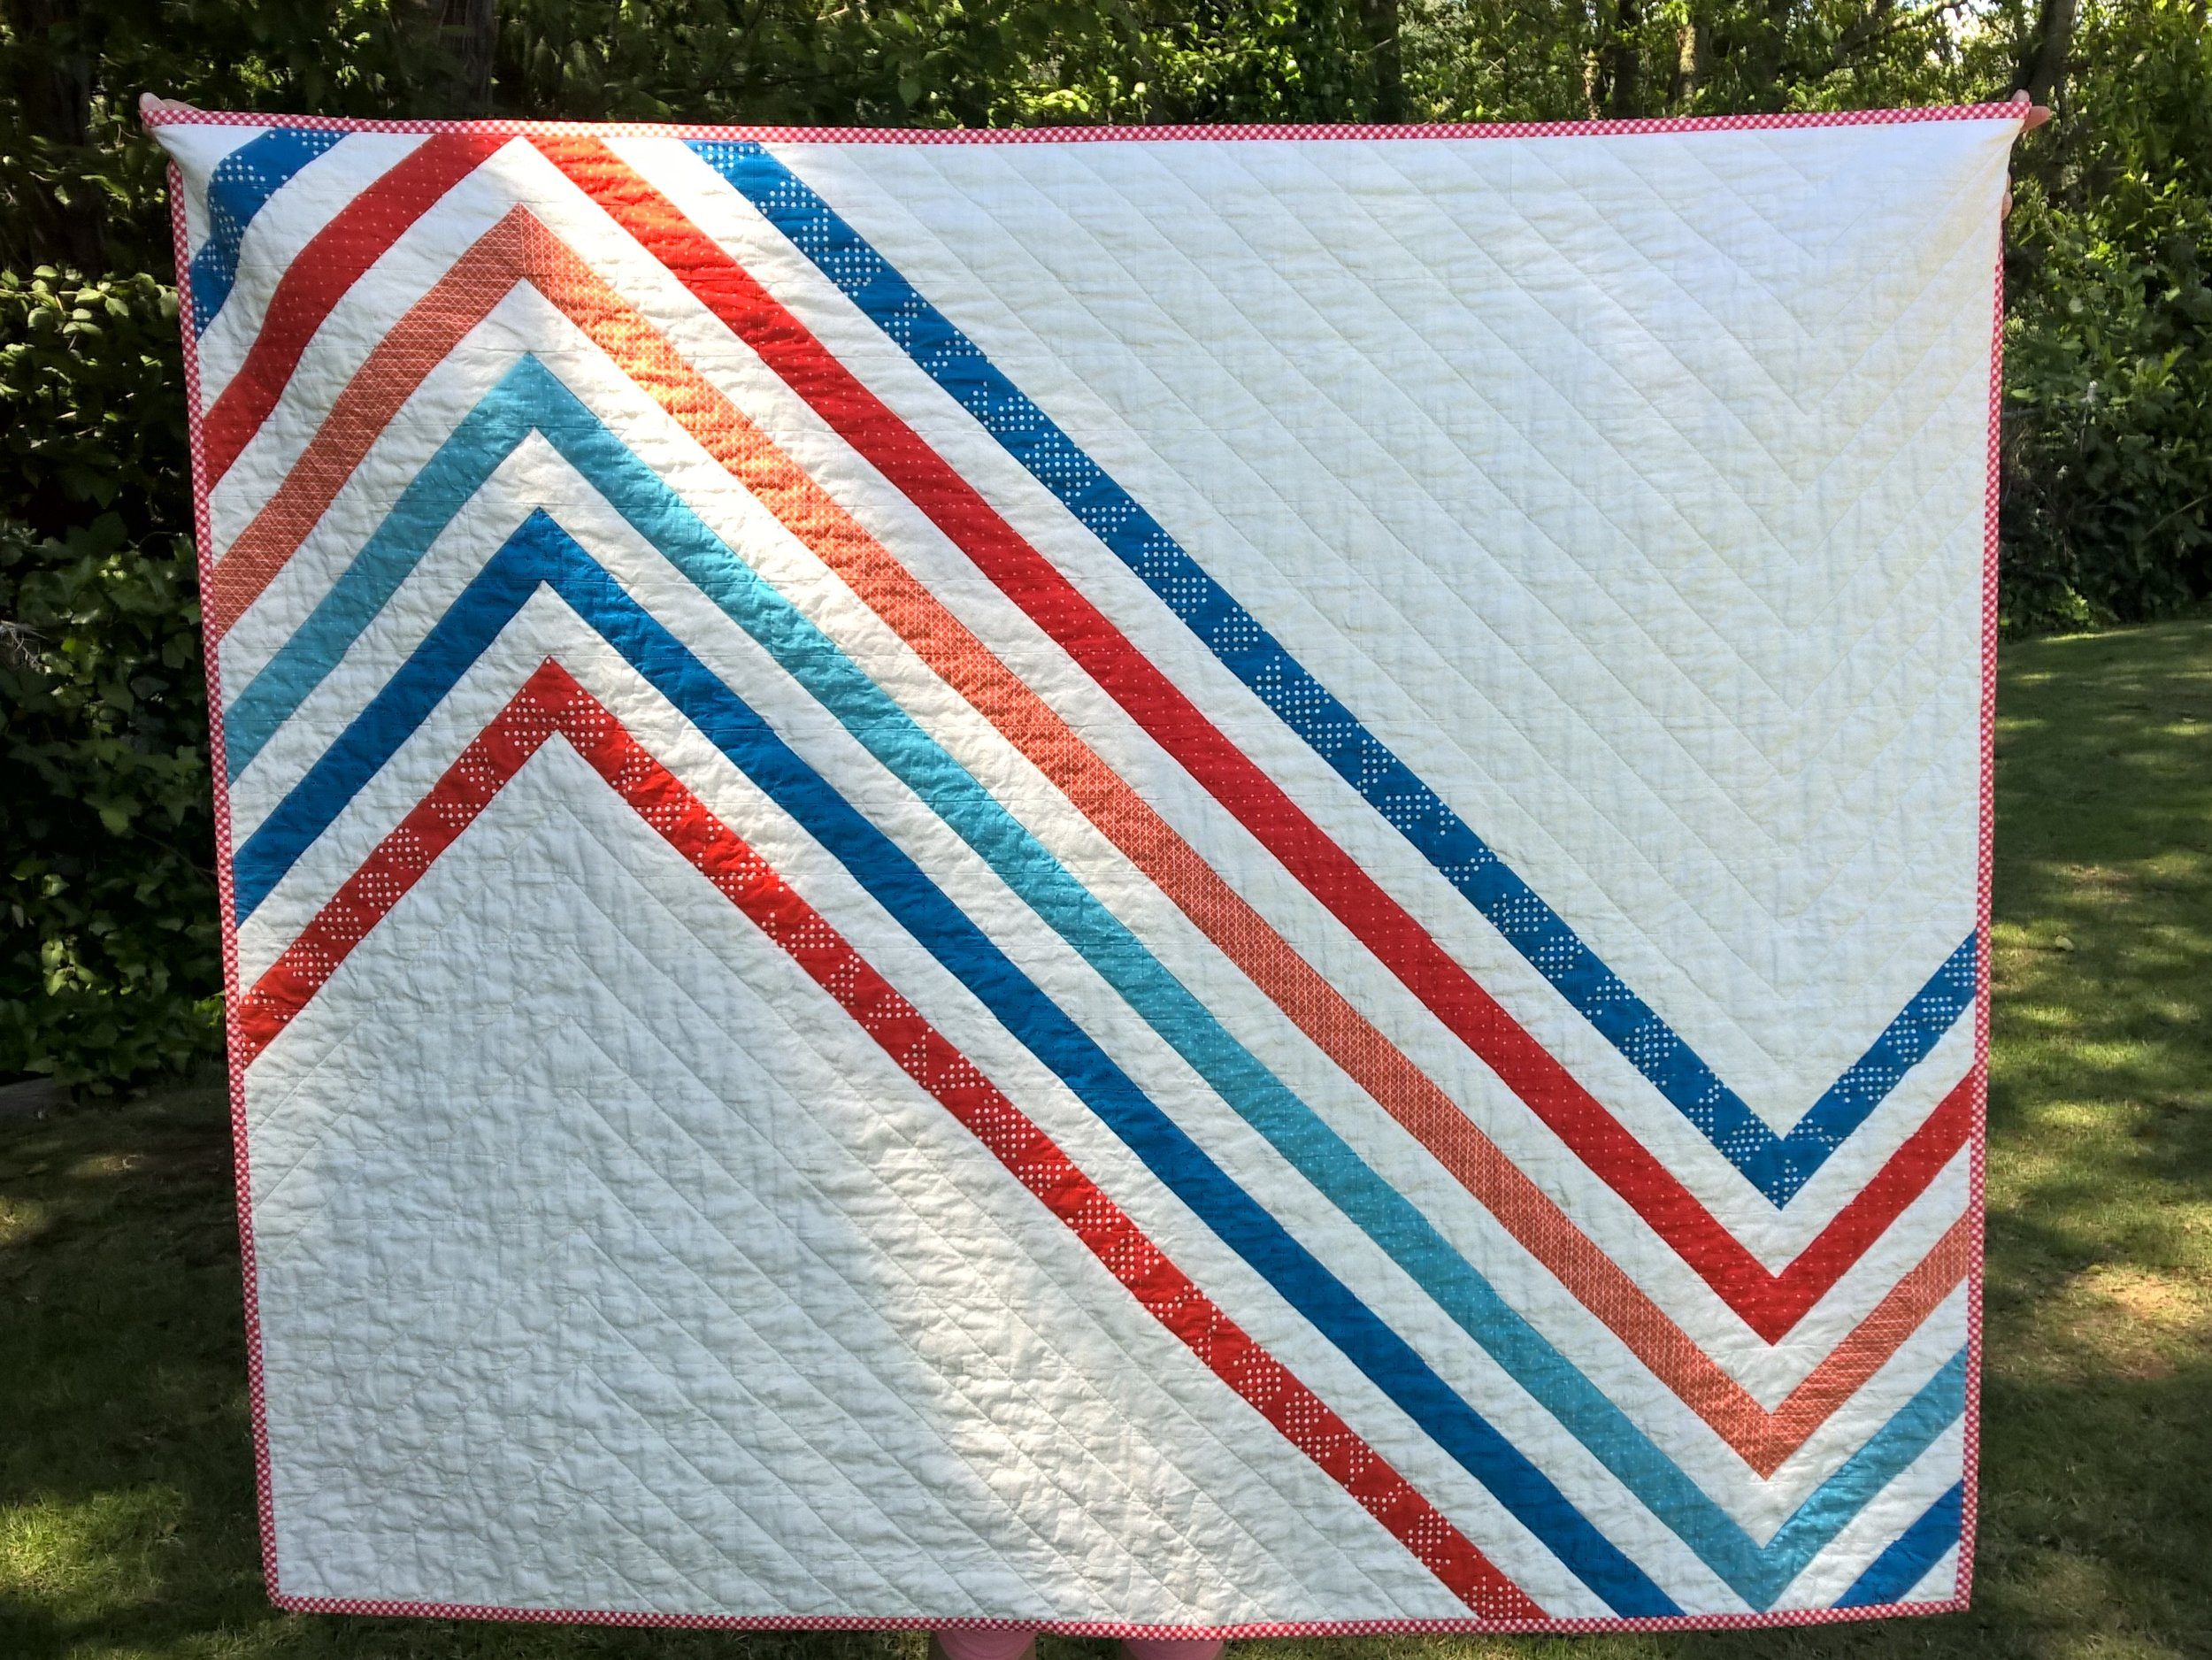 Special thanks to darling daughter for holding the quilt for a photo op!